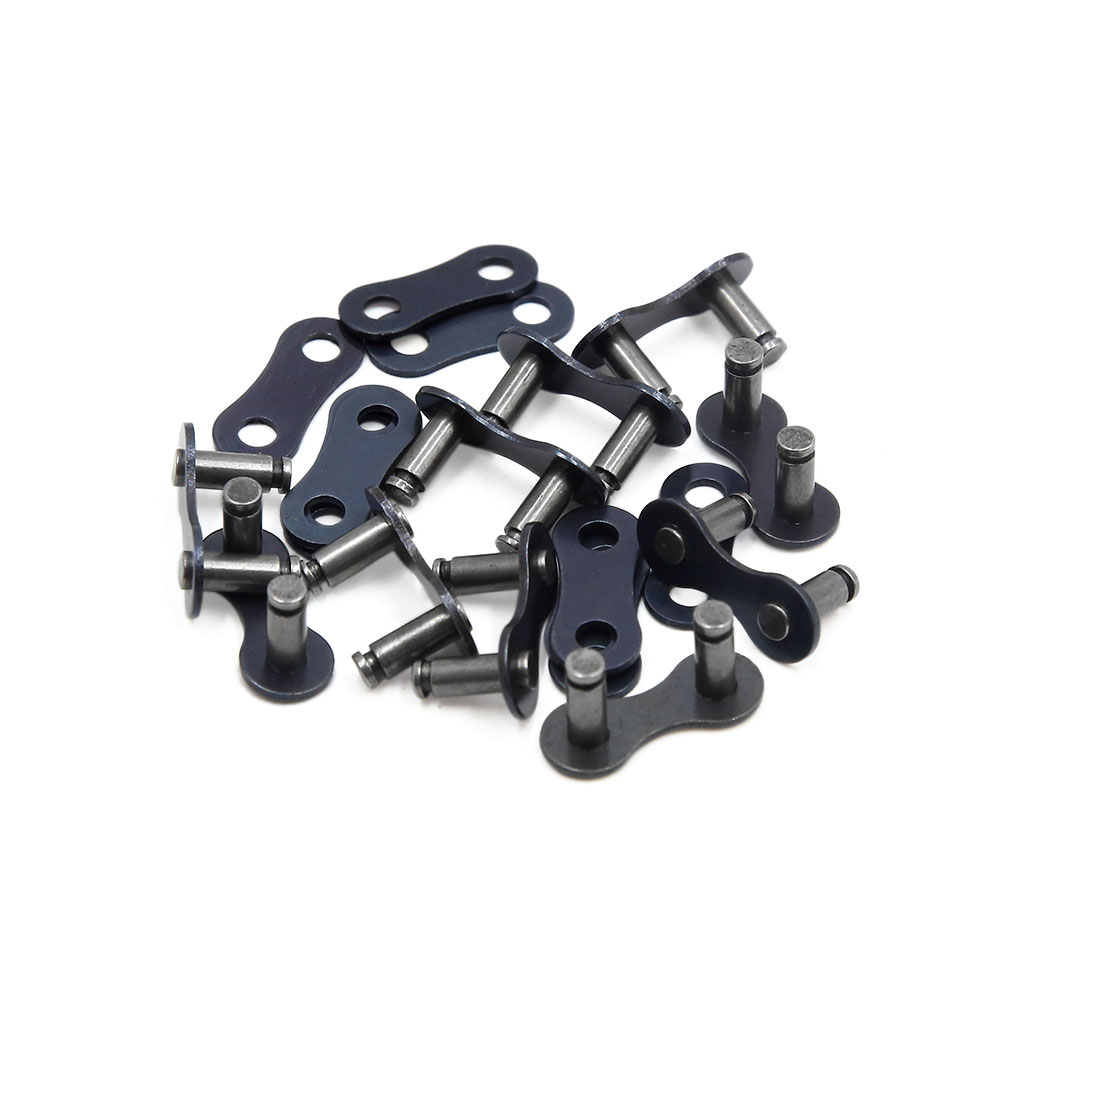 10pcs Metal Chain Master Link Joint Clips Connectors for MTB Bike Bicycle